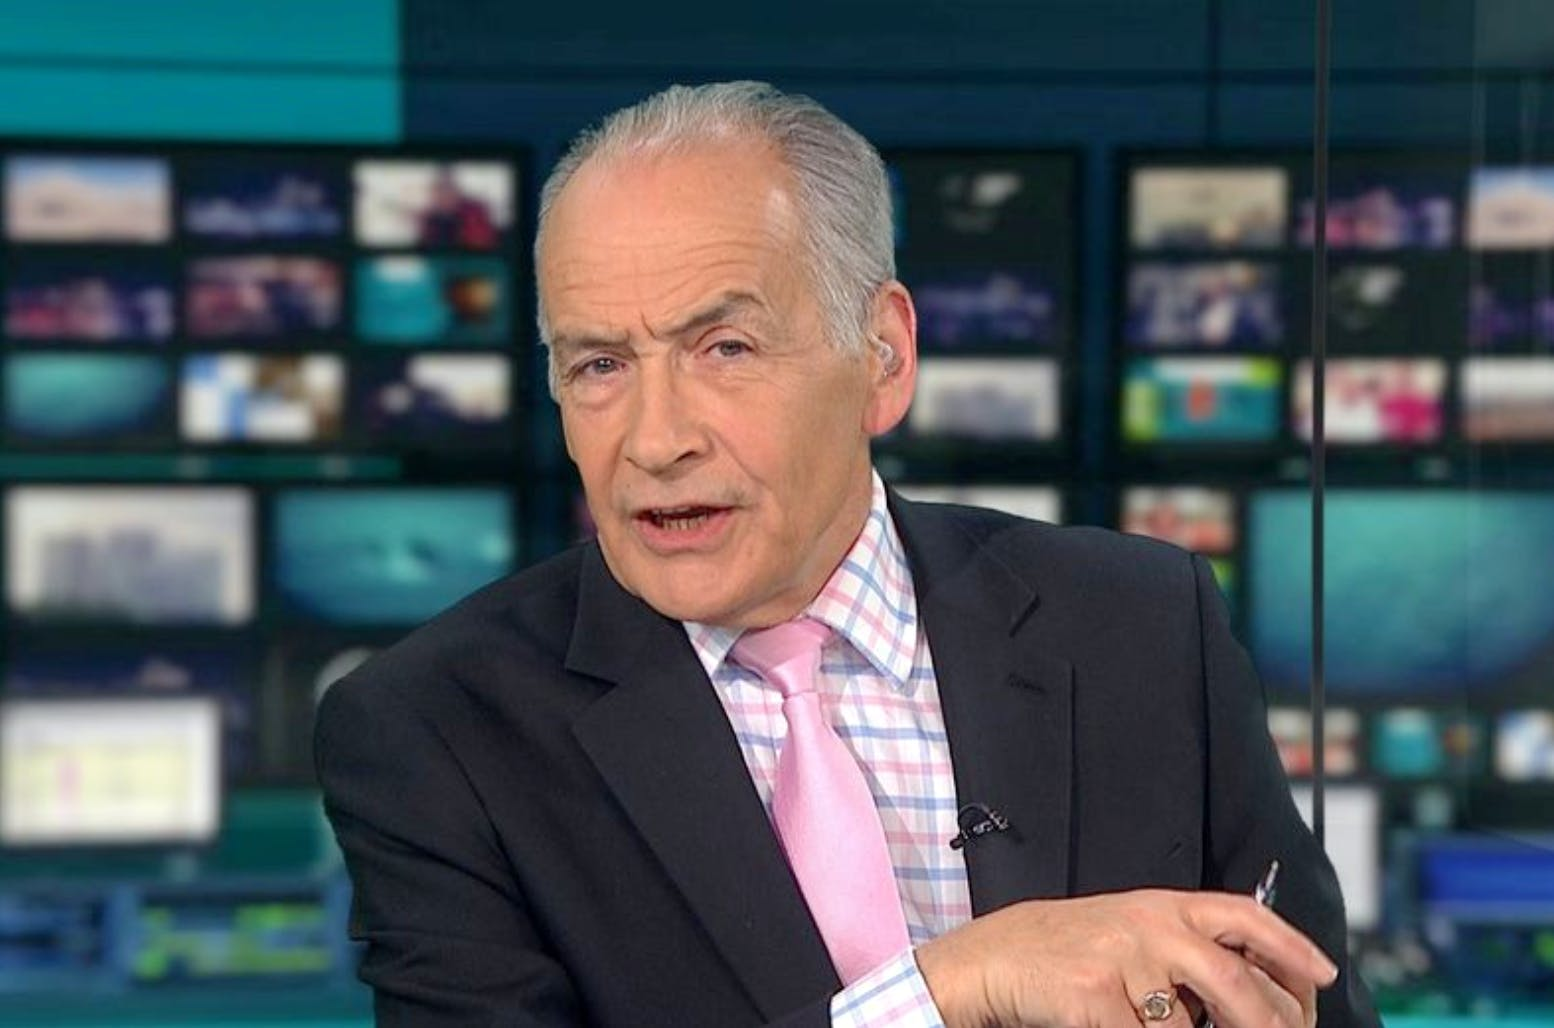 ITV broadcaster Alastair Stewart was even defended by his accuser